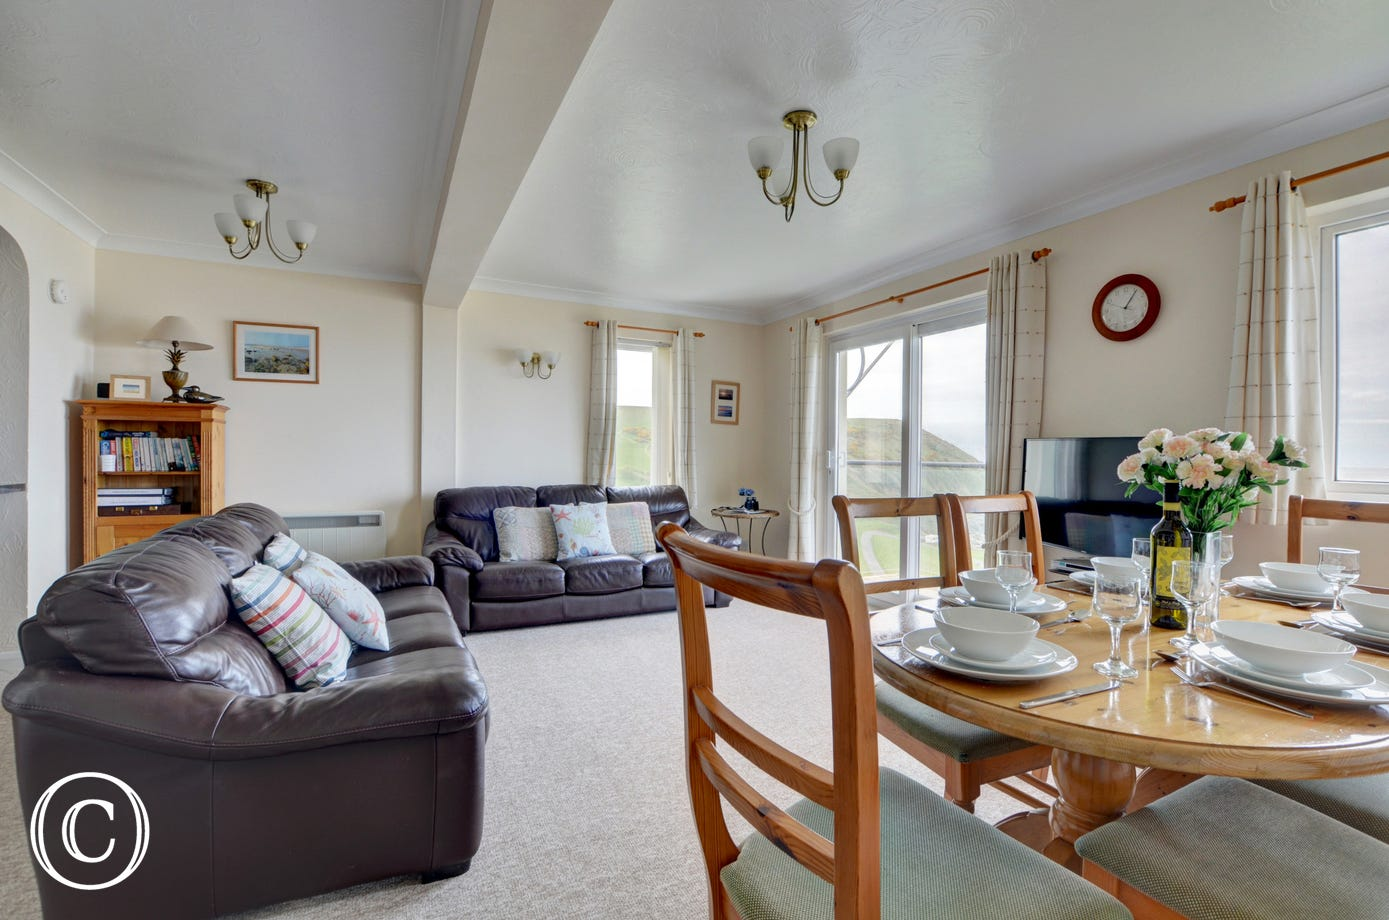 Lovely open plan living area with fantastic views